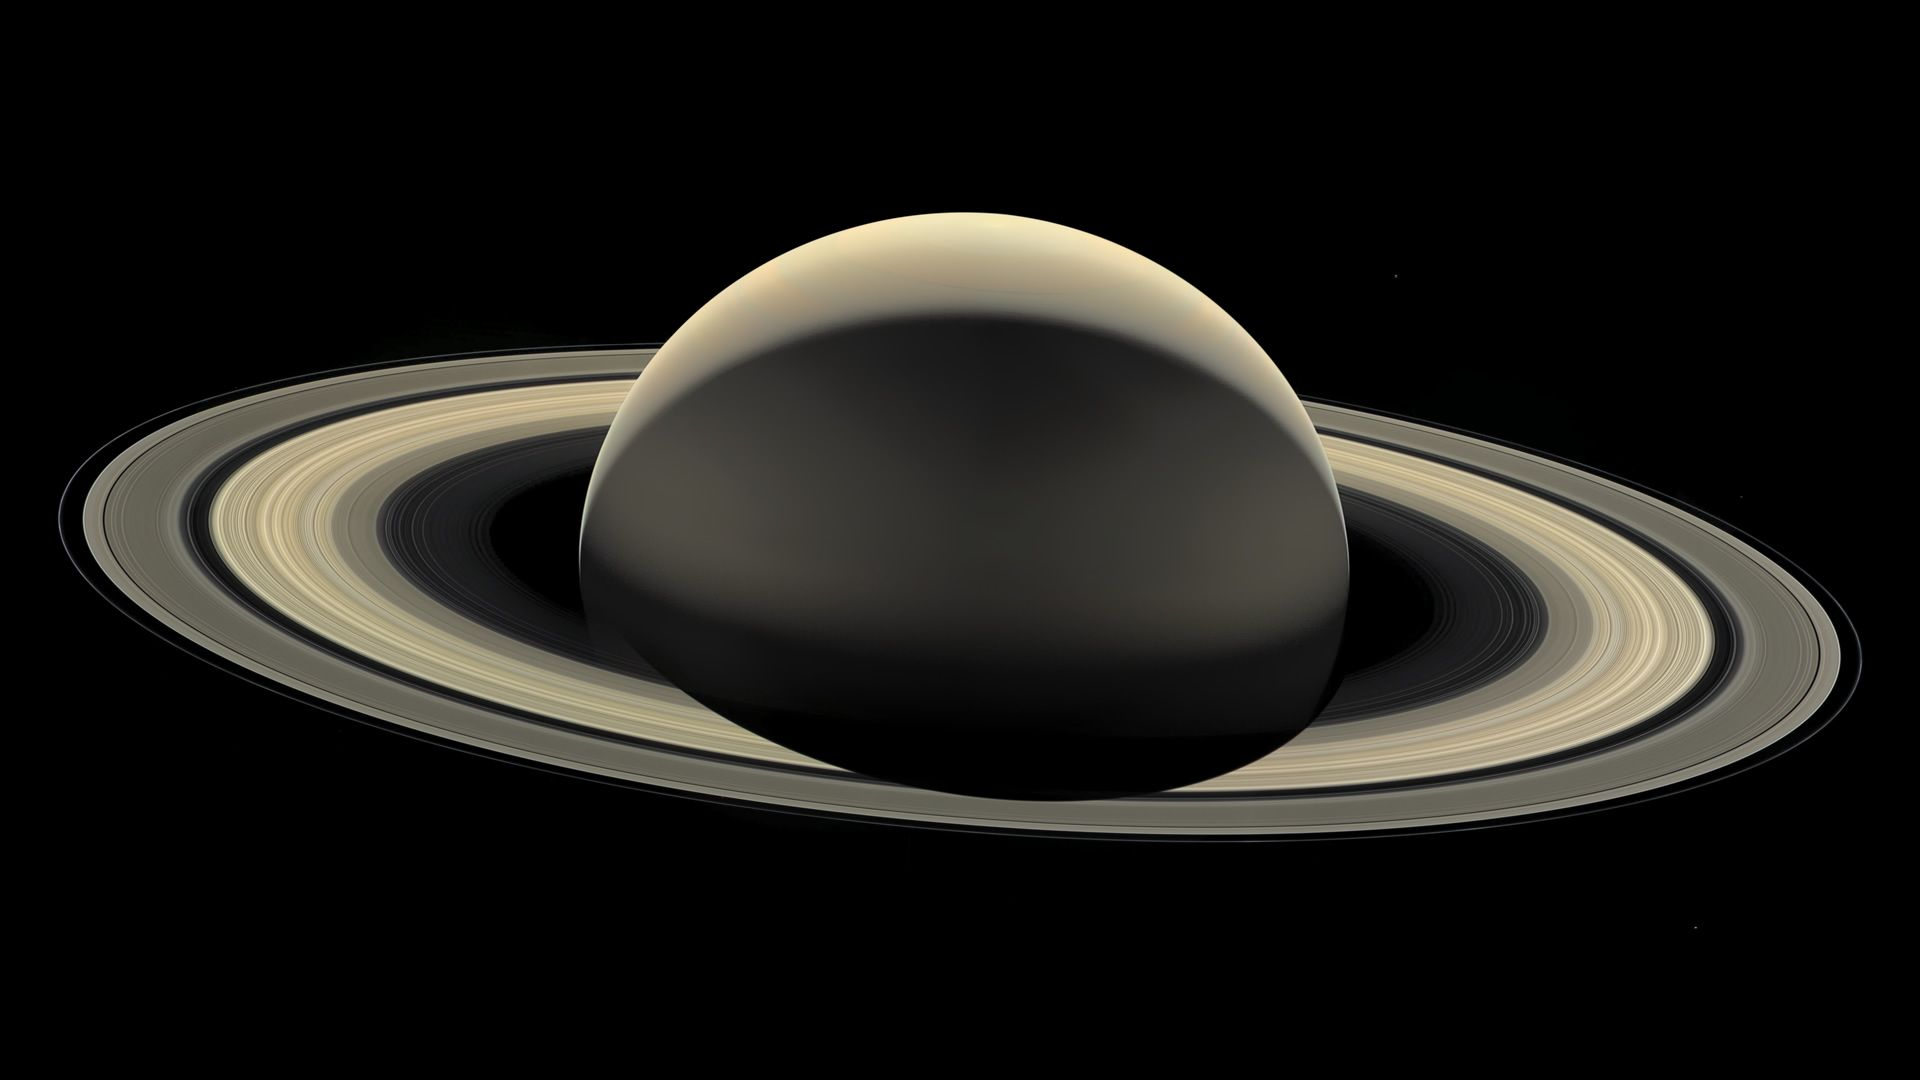 Saturn Wallpapers Top Free Saturn Backgrounds